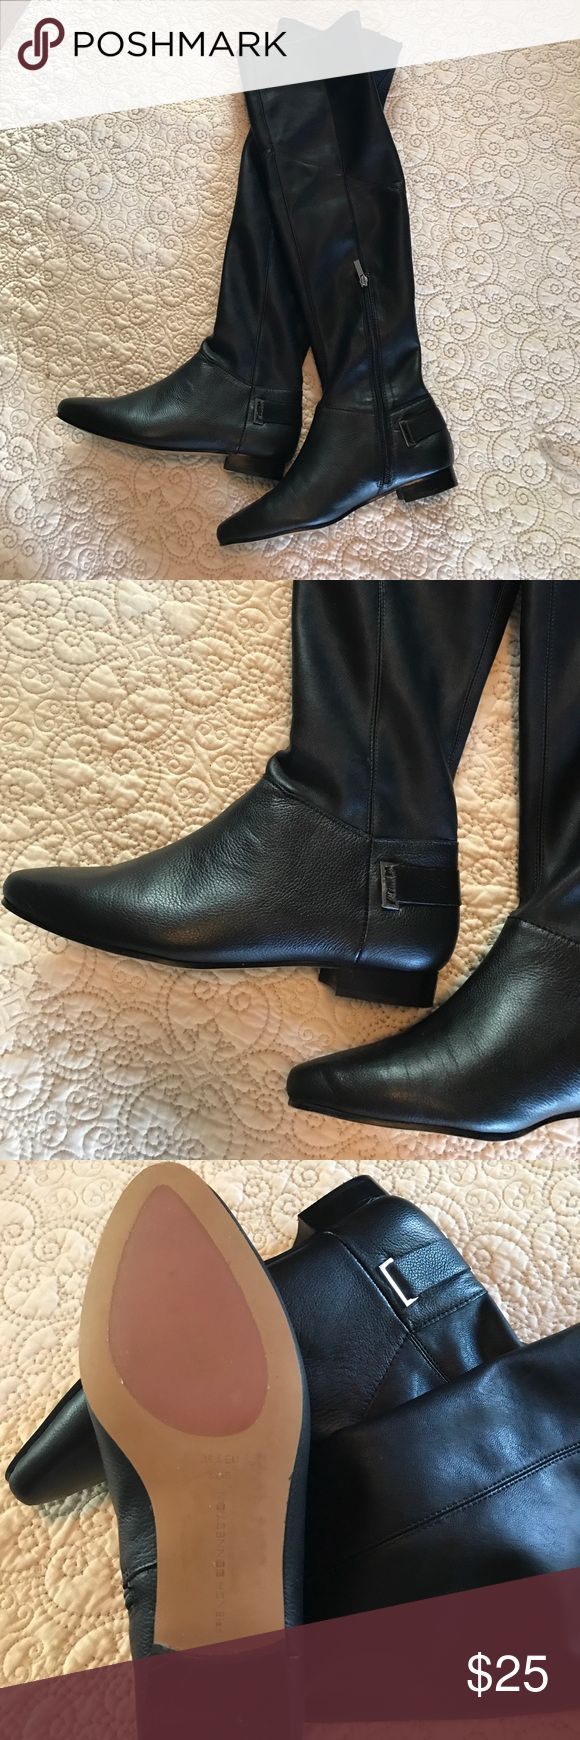 French Connection Over the Knee Boots Never worn, French Connection over the knee boots. Perfect condition! French Connection Shoes Over the Knee Boots